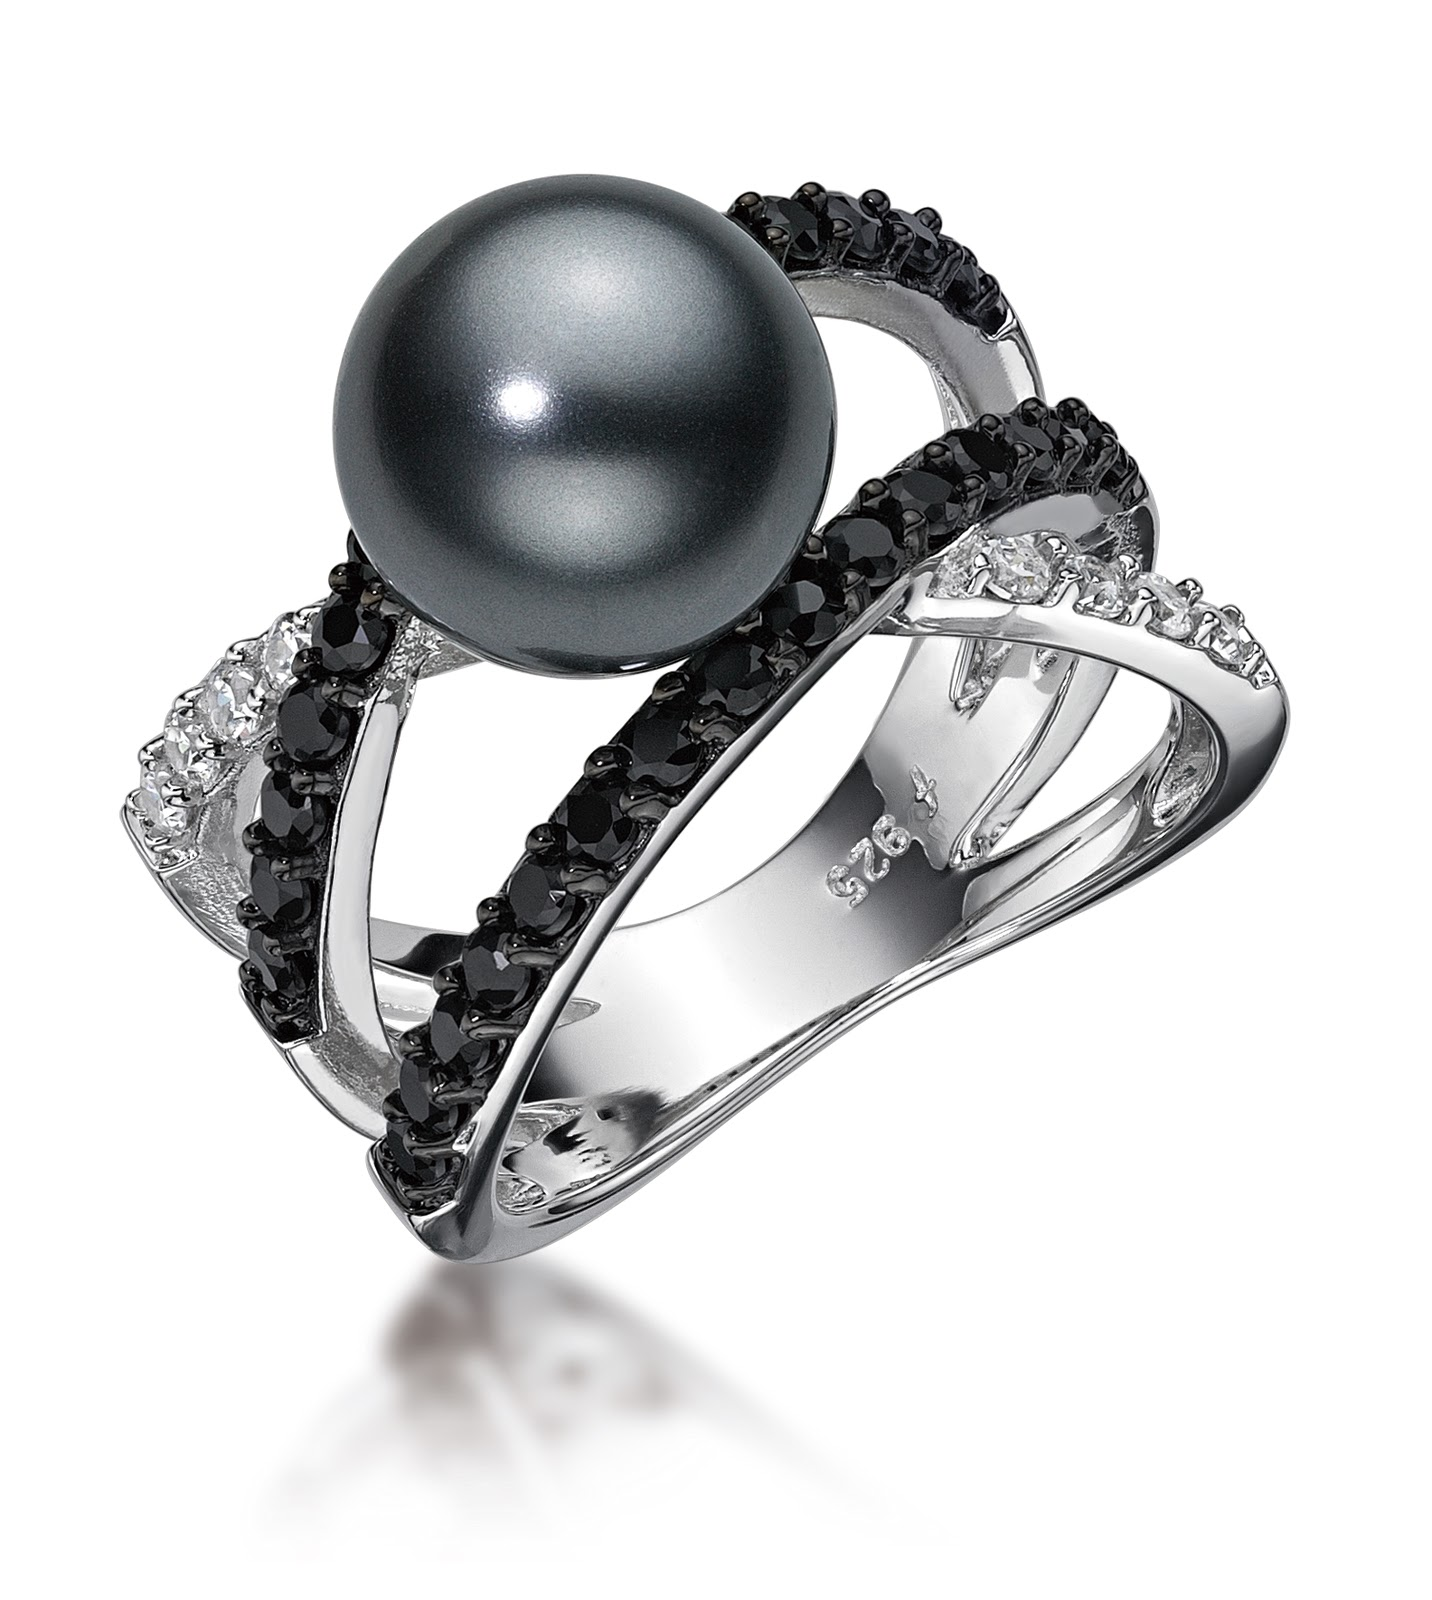 ring engagement rings roberts fairfax pearl product diamond south sea